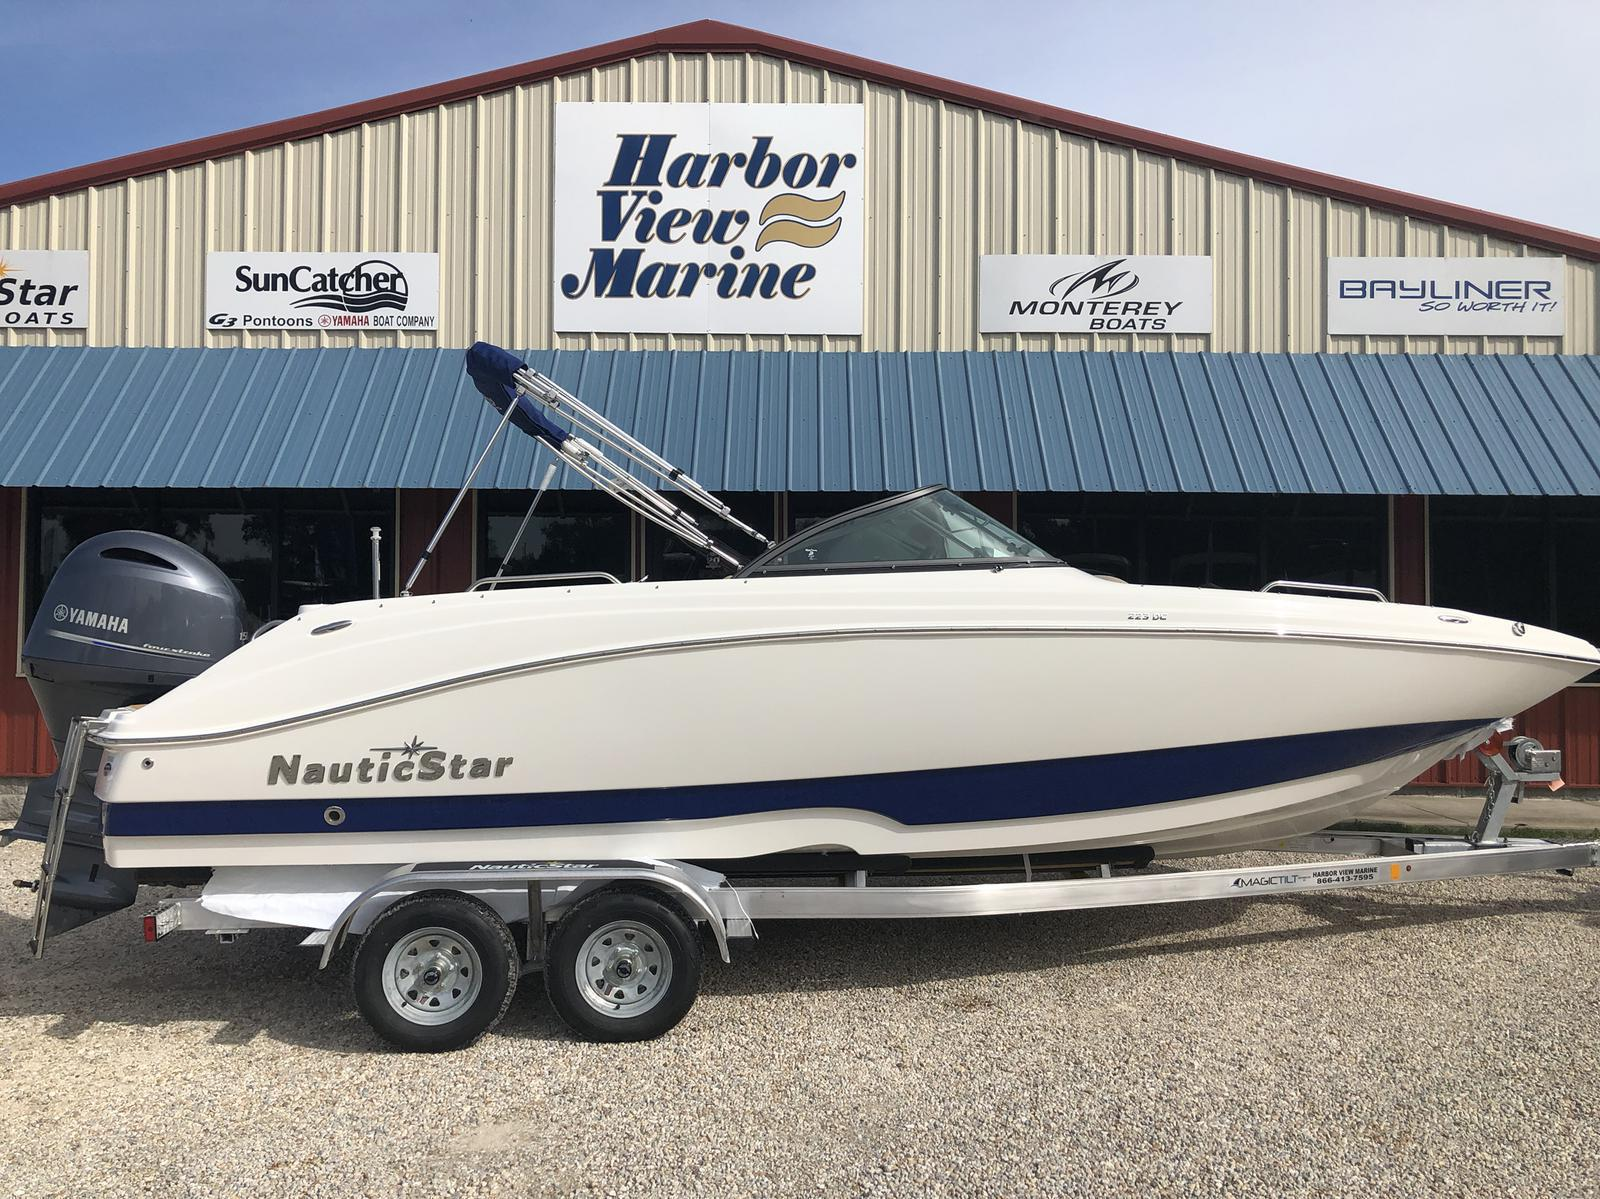 In-Stock New and Used Models For Sale in Pensacola, FL Harbor View